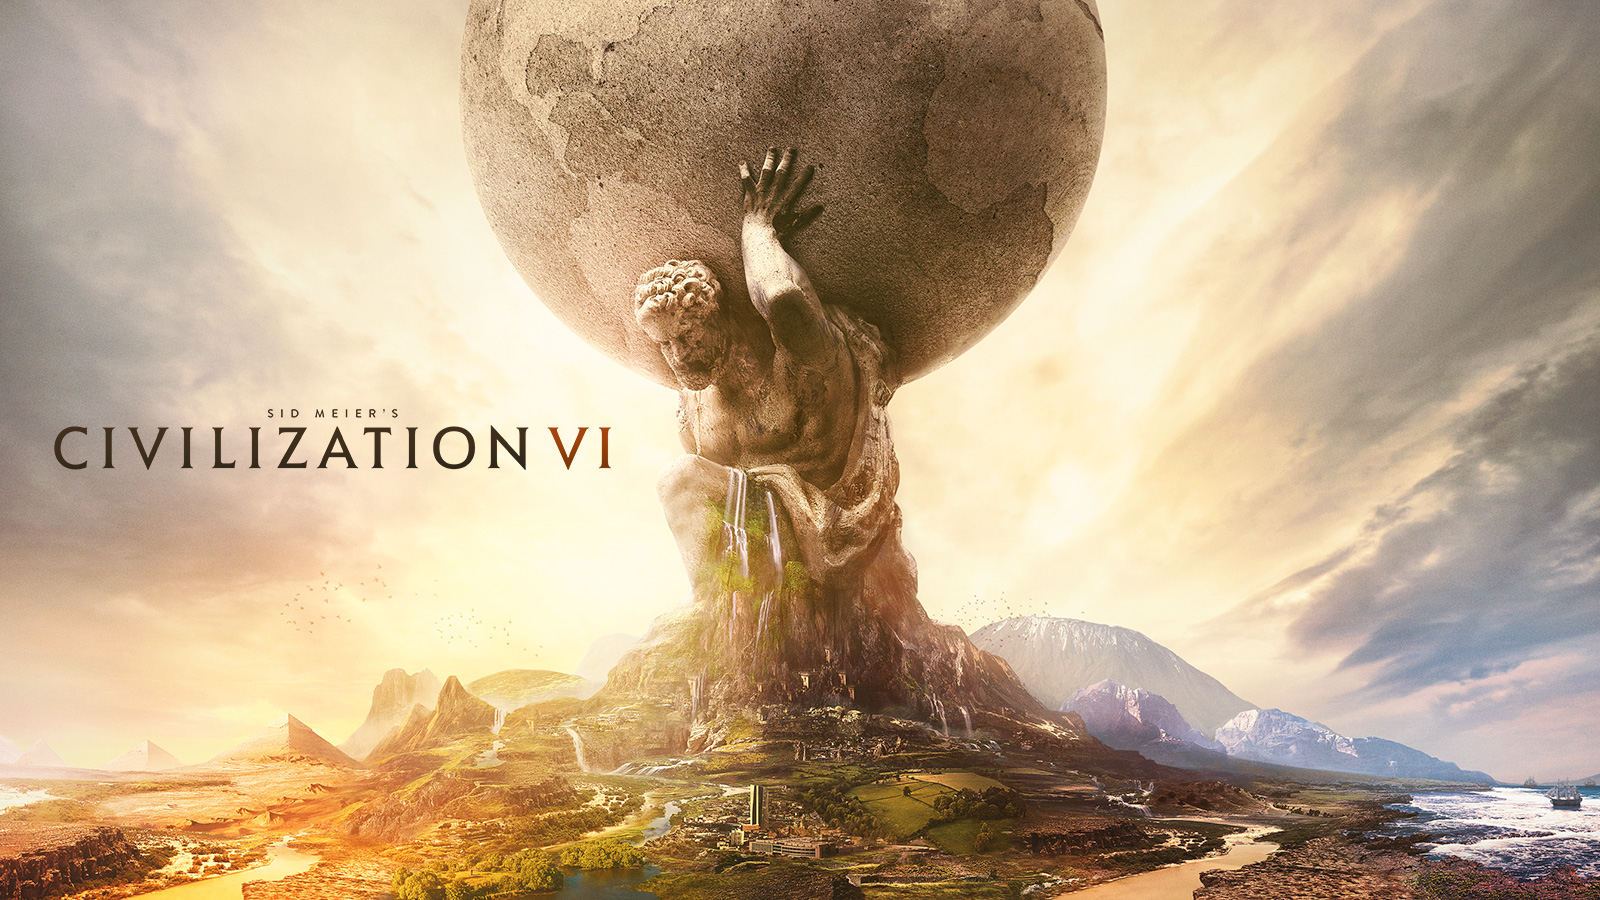 Civilization VI turn-based strategy game arrives on Android, two years after iOS release - Android Police